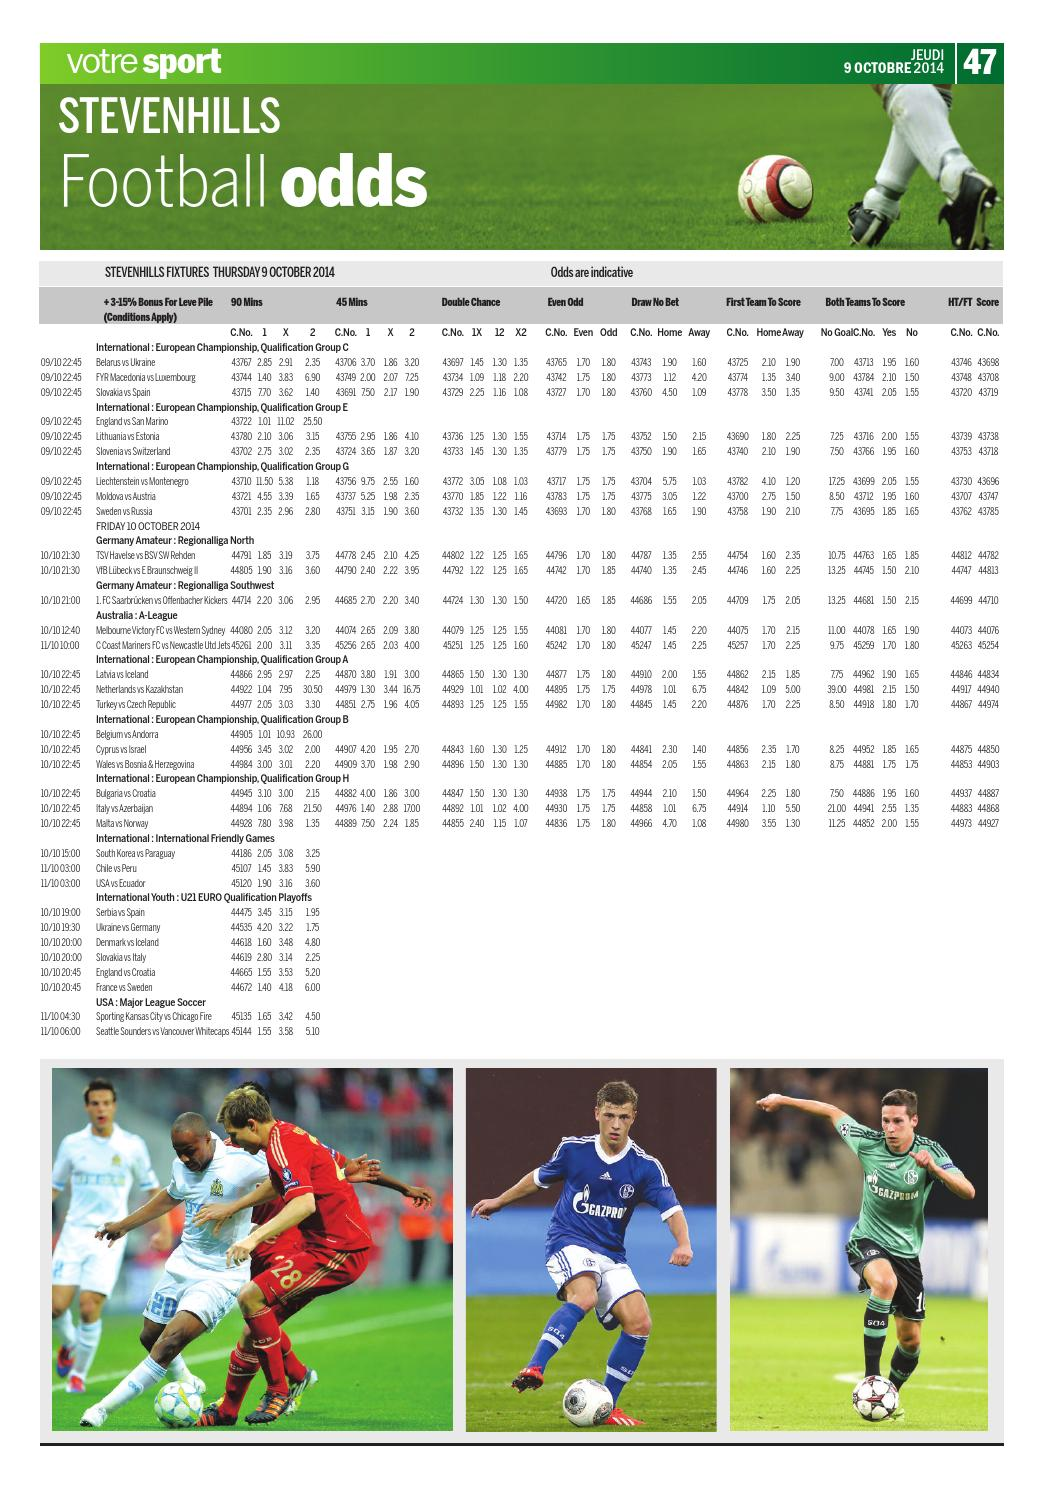 Stevenhills football betting footy predictions today/betting